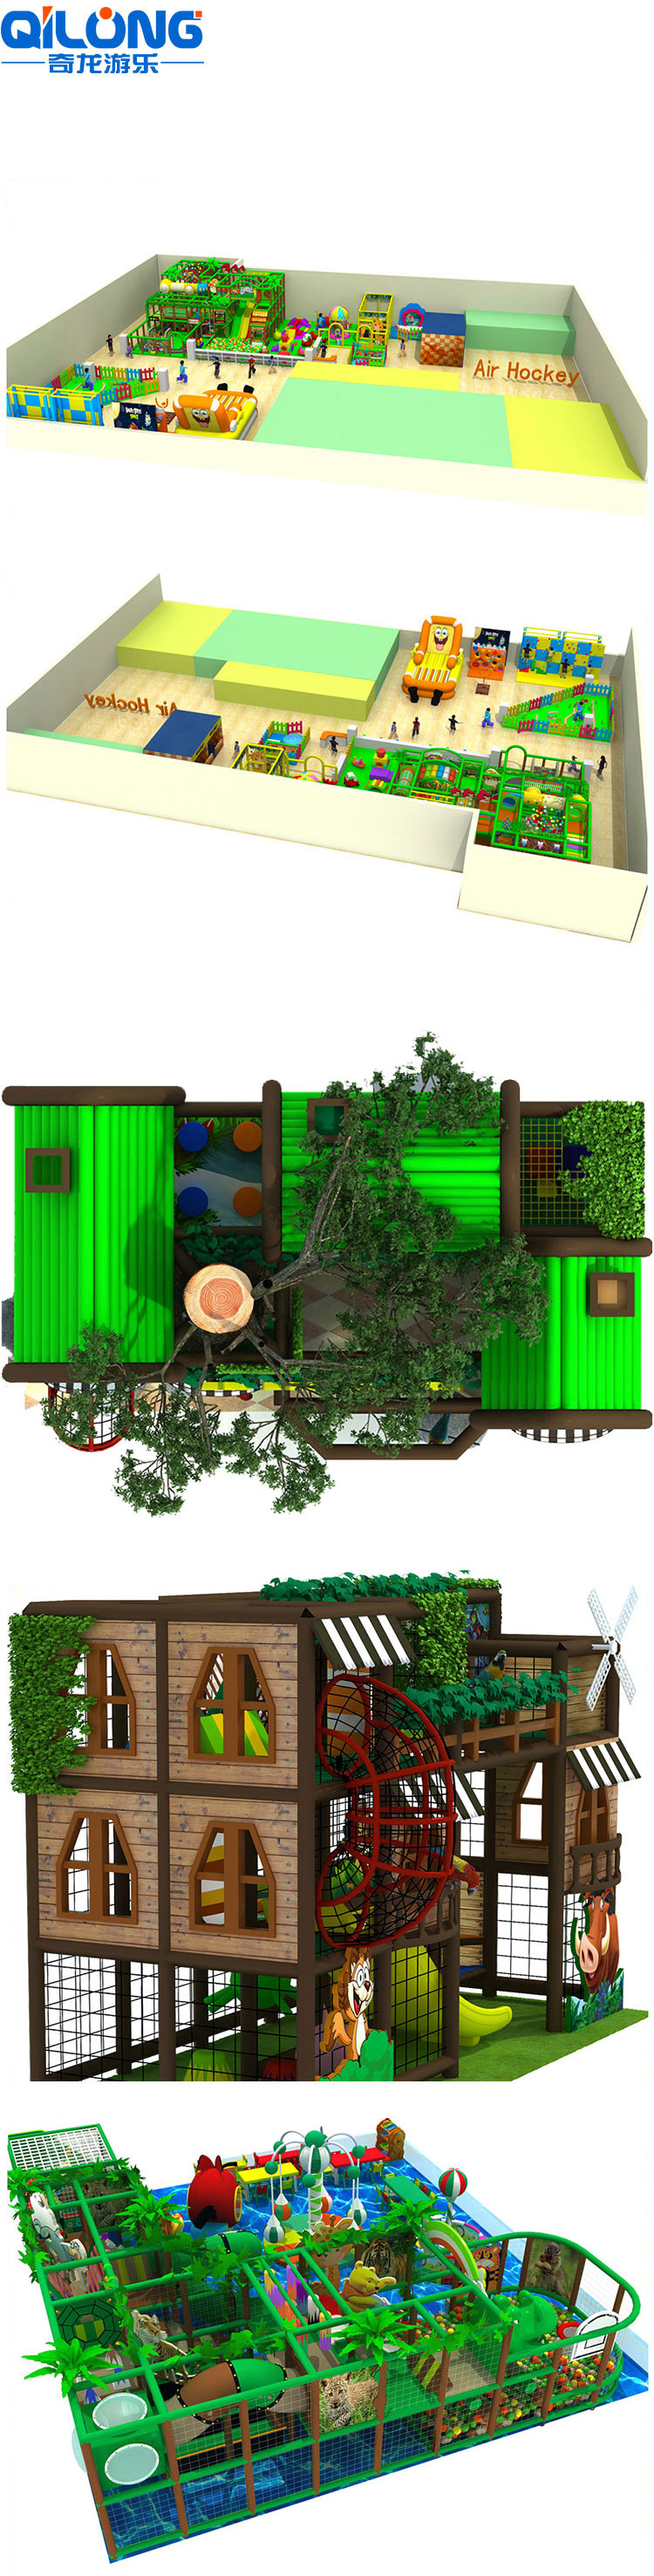 Tree House Theme Slide Jungle Indoor Playground Systems